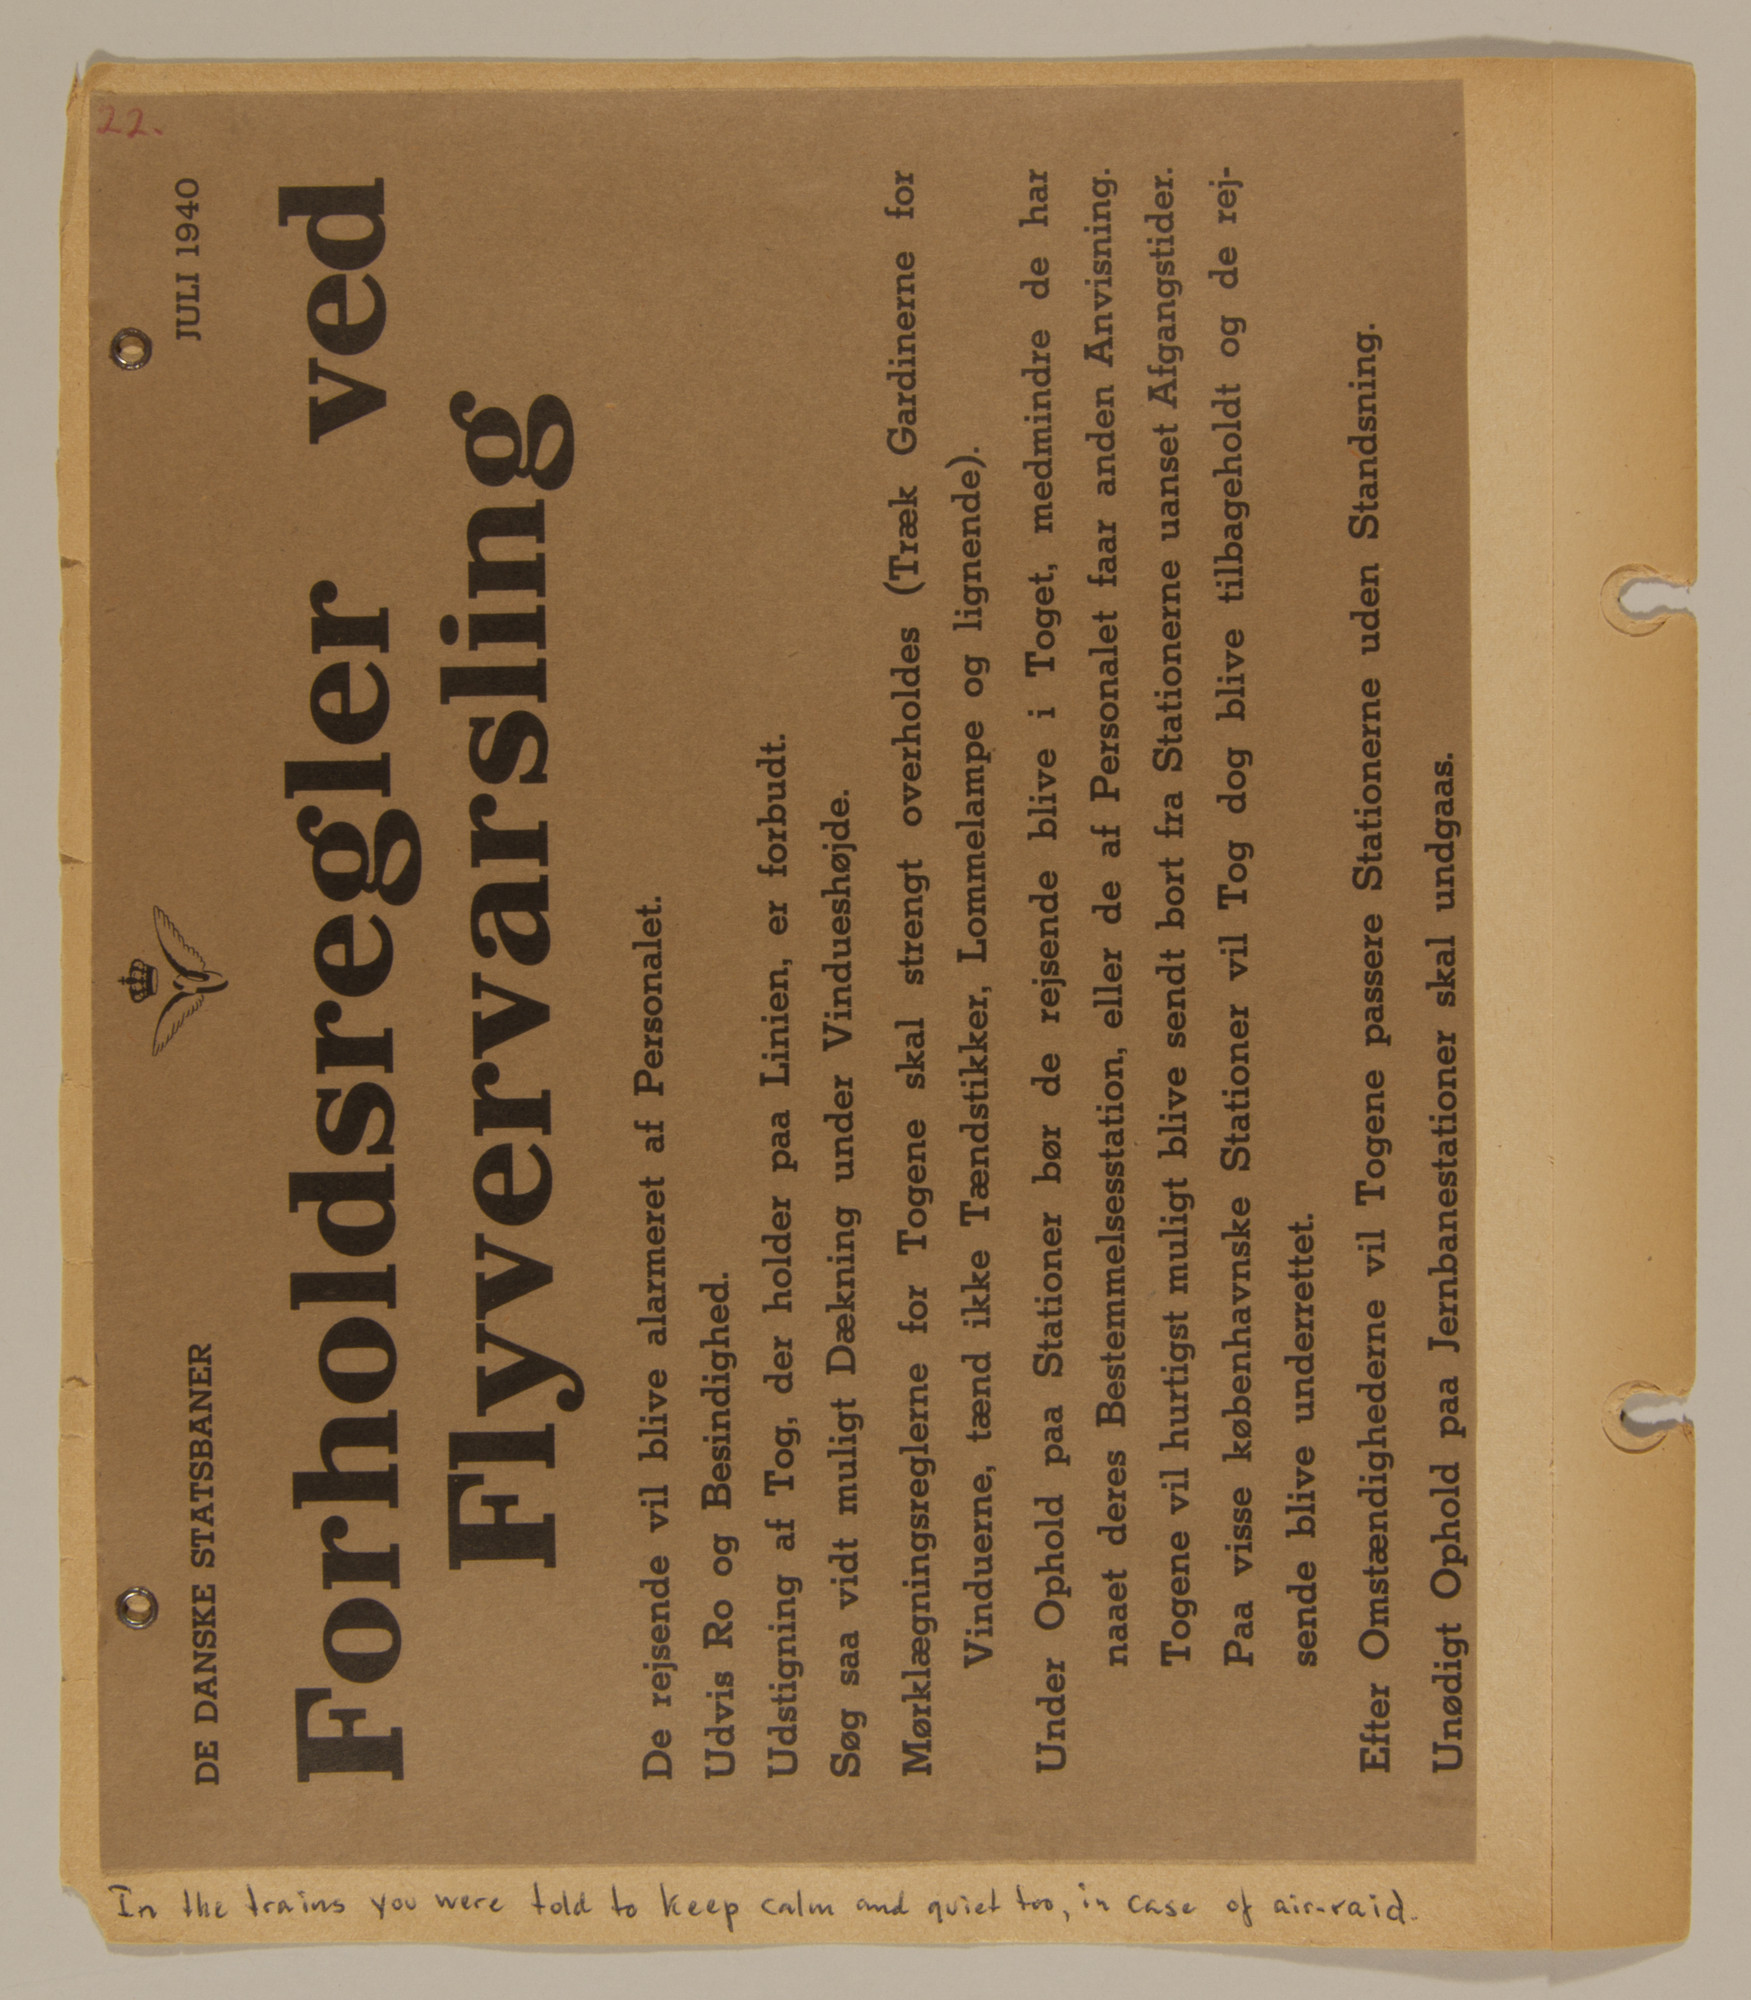 Page from volume one of a set of scrapbooks compiled by Bjorn Sibbern, a Danish policeman and resistance member, documenting the German occupation of Denmark.  This page contains a bulletin about what to do in case of an air-raid.